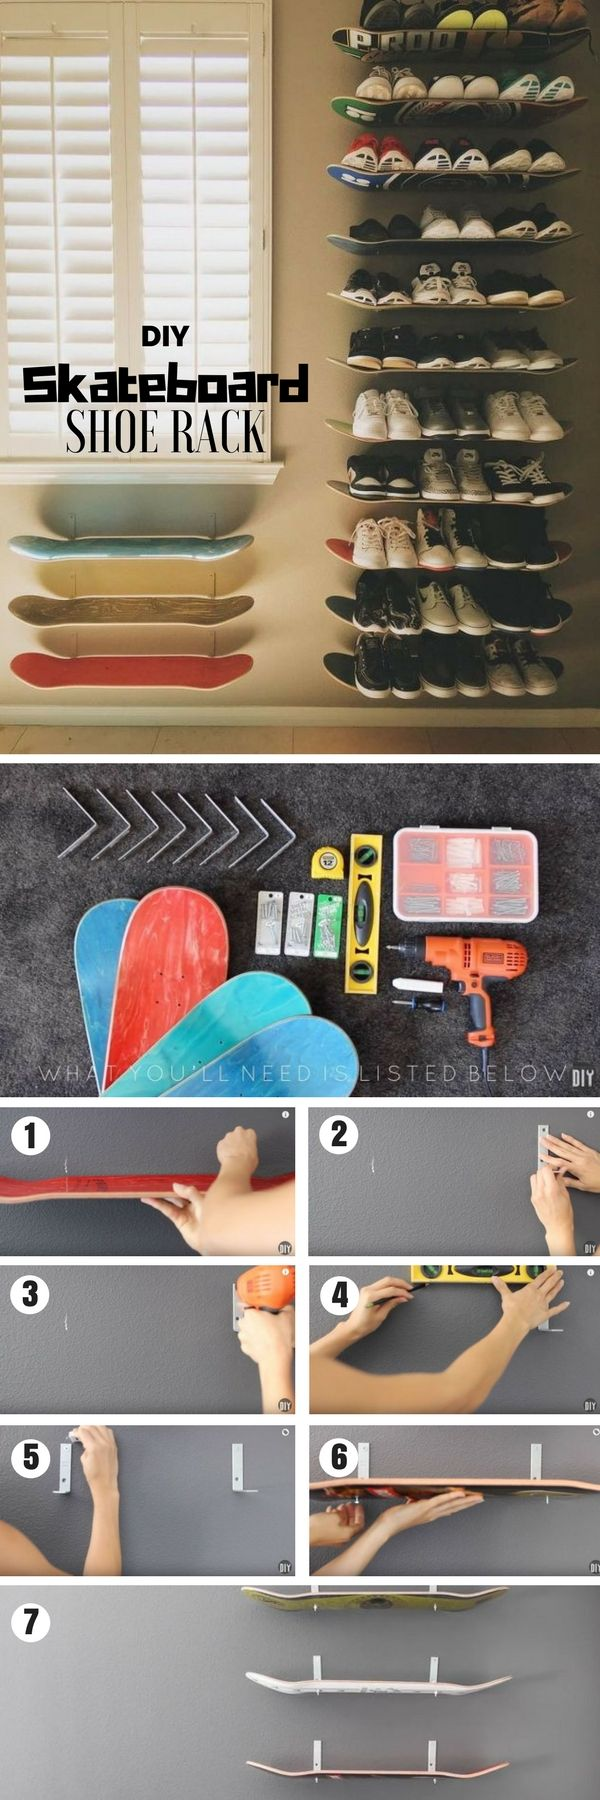 62 Easy Diy Shoe Rack Storage Ideas You Can Build On A Budget Diy Shoe Rack Diy Shoe Storage Skateboard Furniture